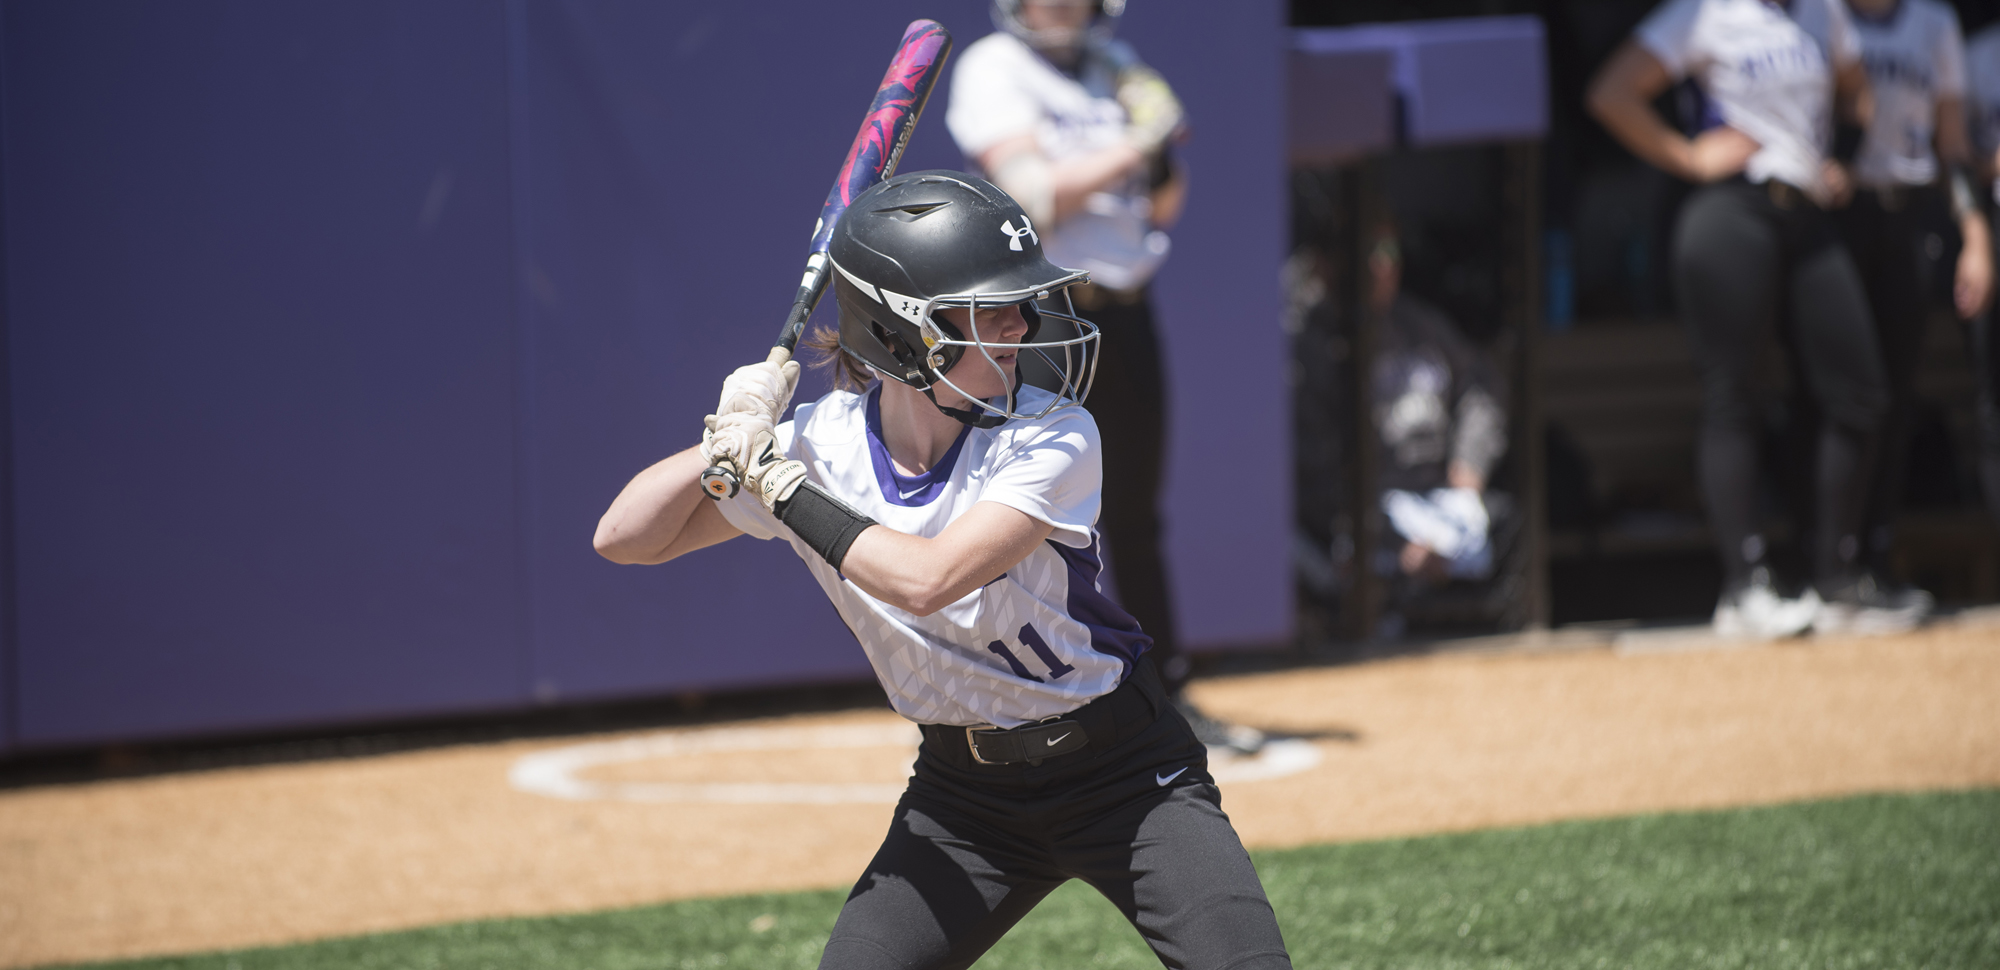 Mackenzie Duffy scored the game-winning run on Friday afternoon as Scranton defeated Susquehanna 2-1 to open the Landmark Conference Championships.